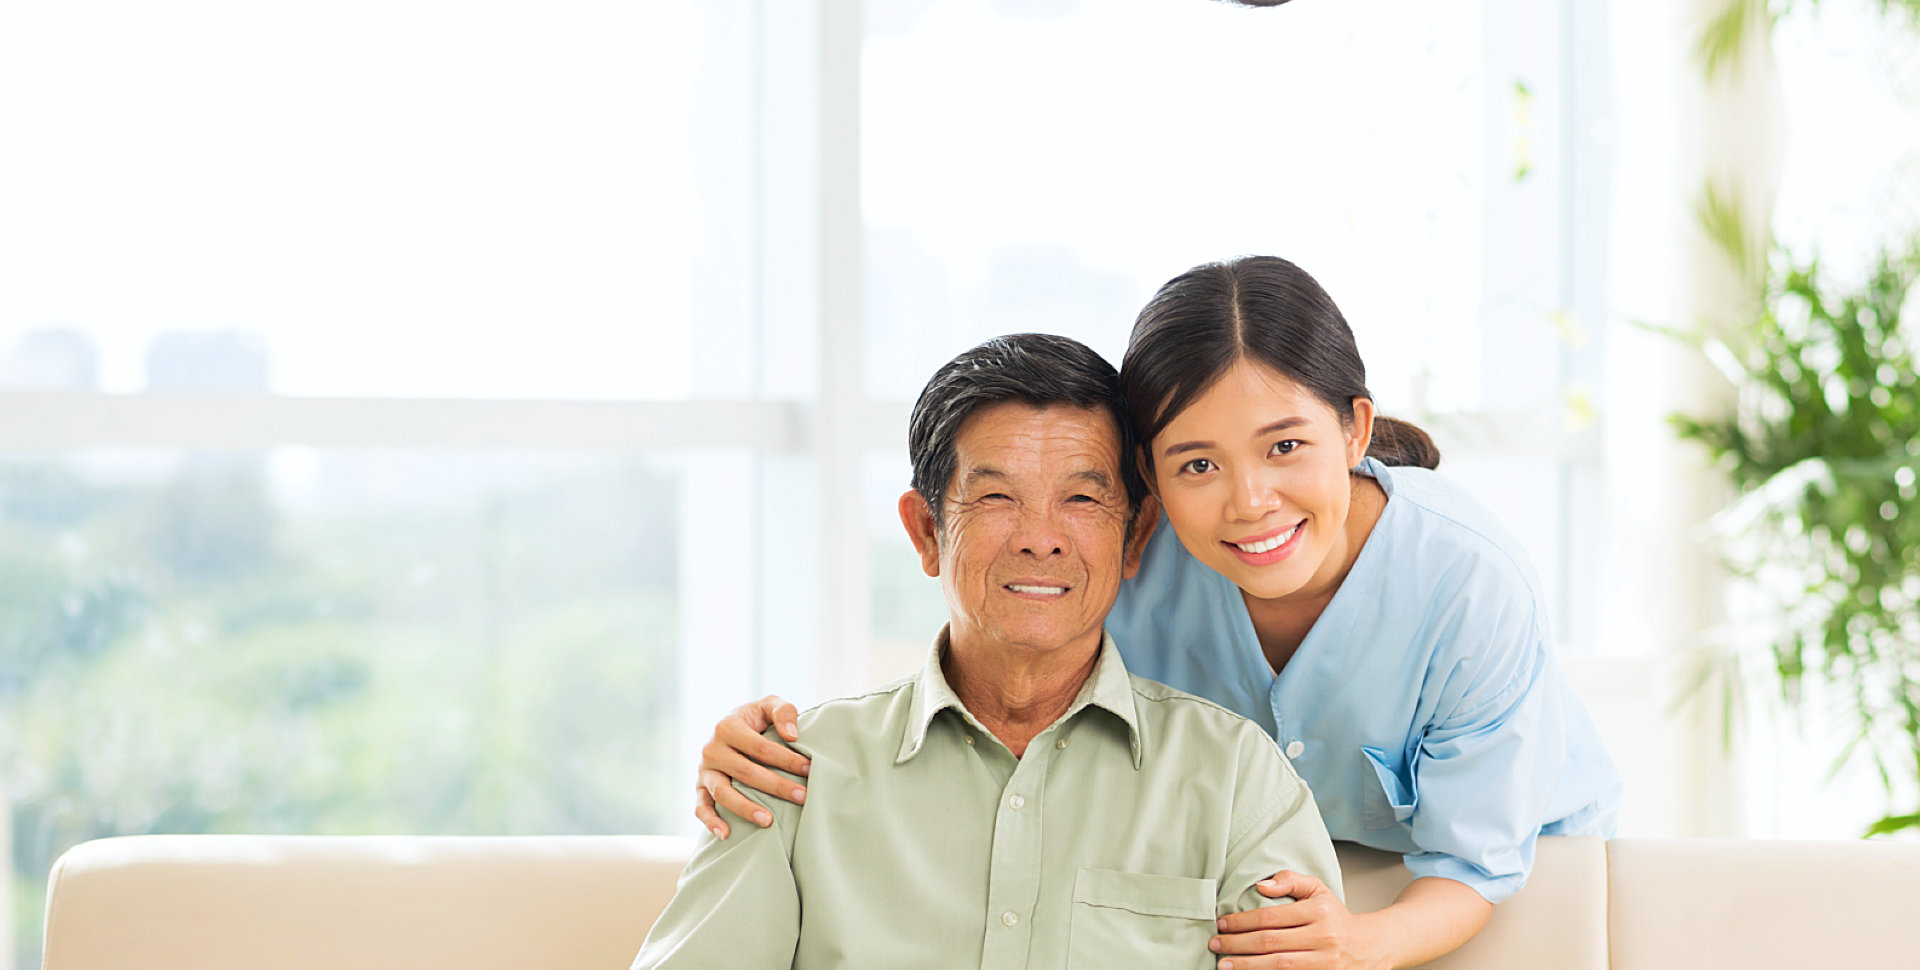 female caregiver and her old man patient smiling